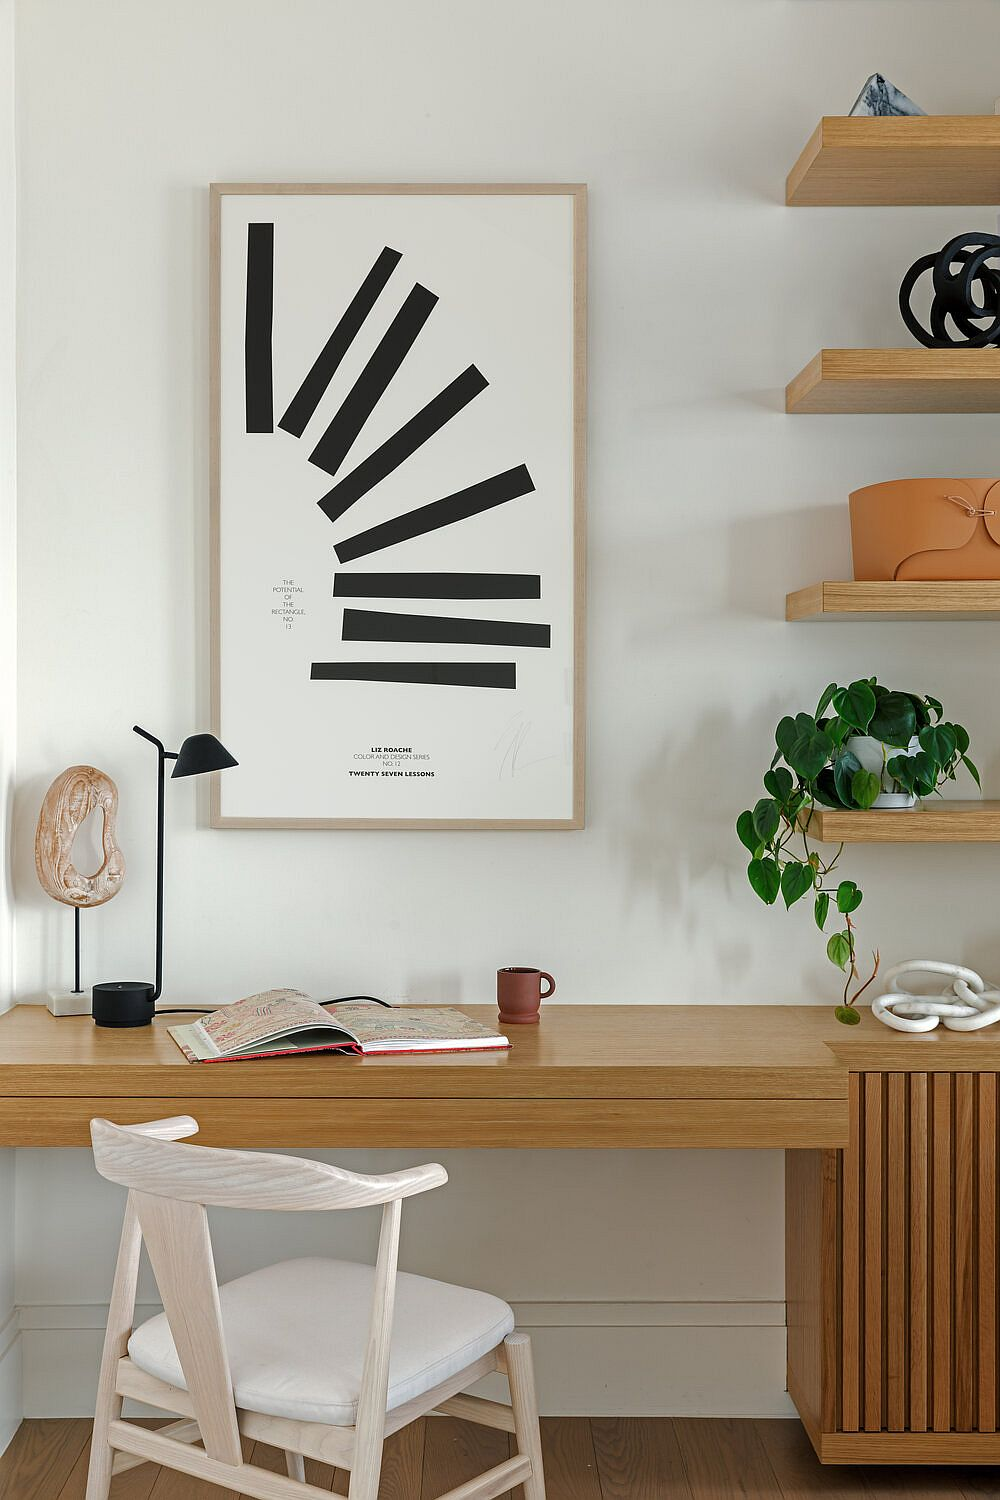 Easy-and-elegant-home-workspace-created-using-a-floating-wooden-desk-and-comfy-chair-79525